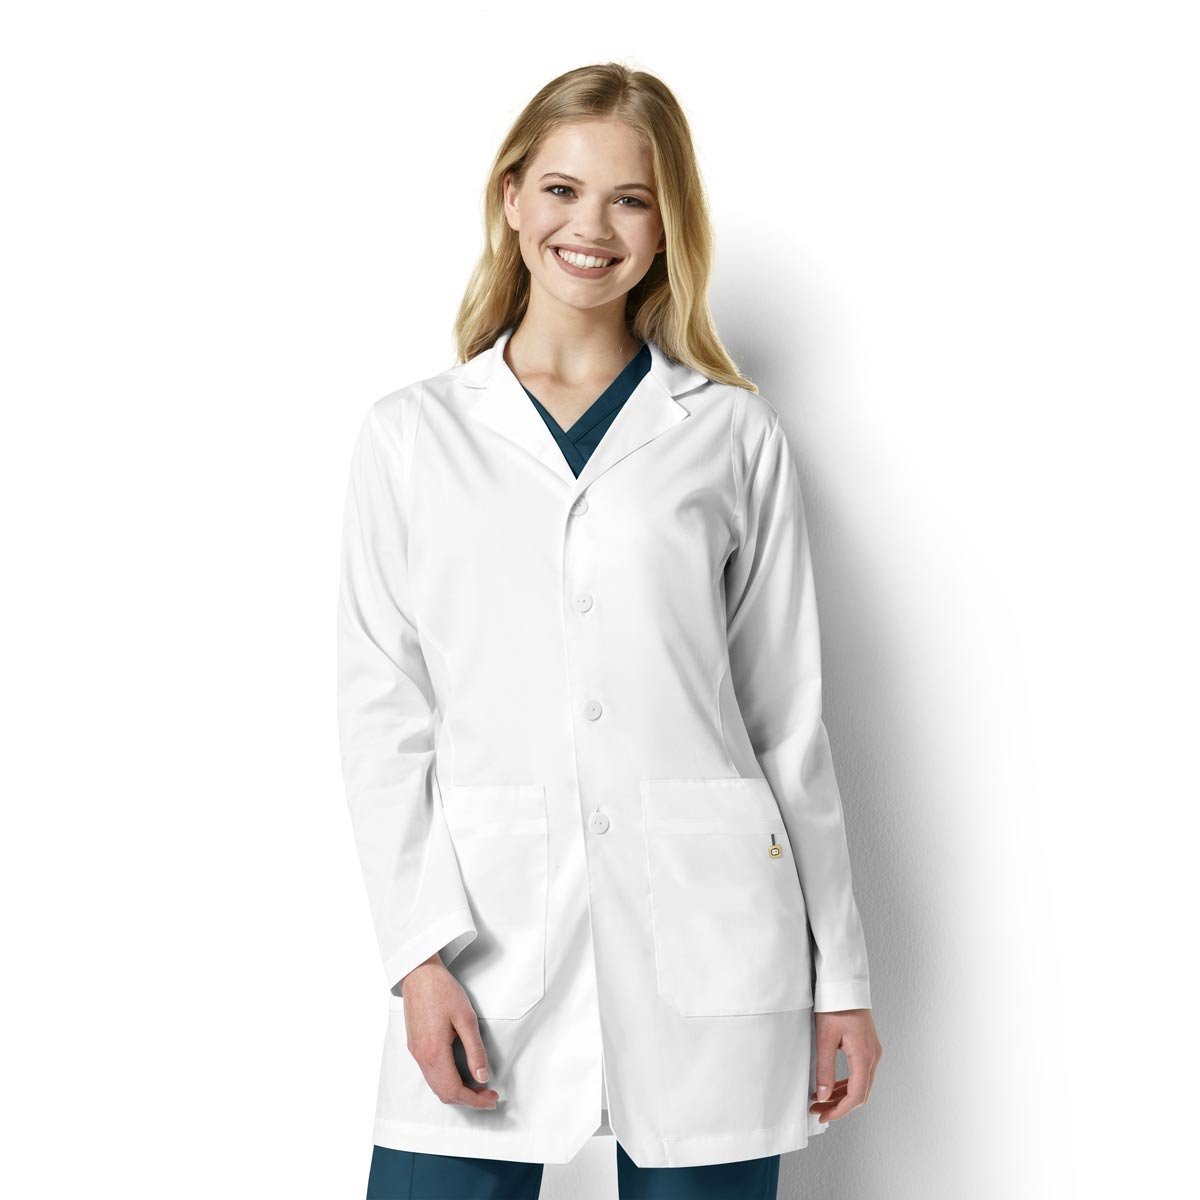 Women's Bristol Stylized Collar White Lab Coat | WonderWink Next